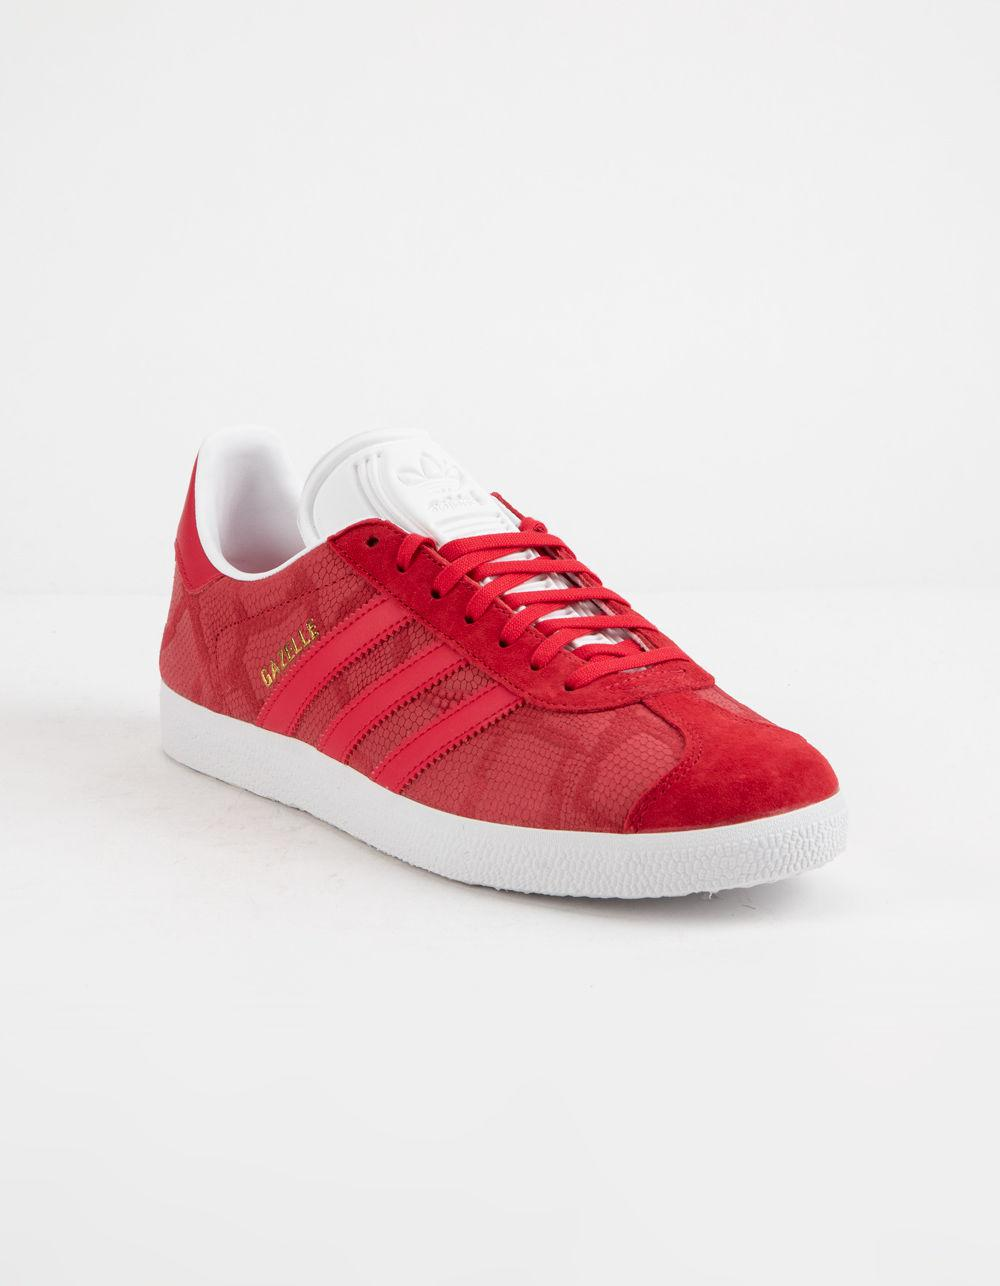 9af9b3811ca3 Lyst - adidas Gazelle Bold Red Womens Shoes in Red